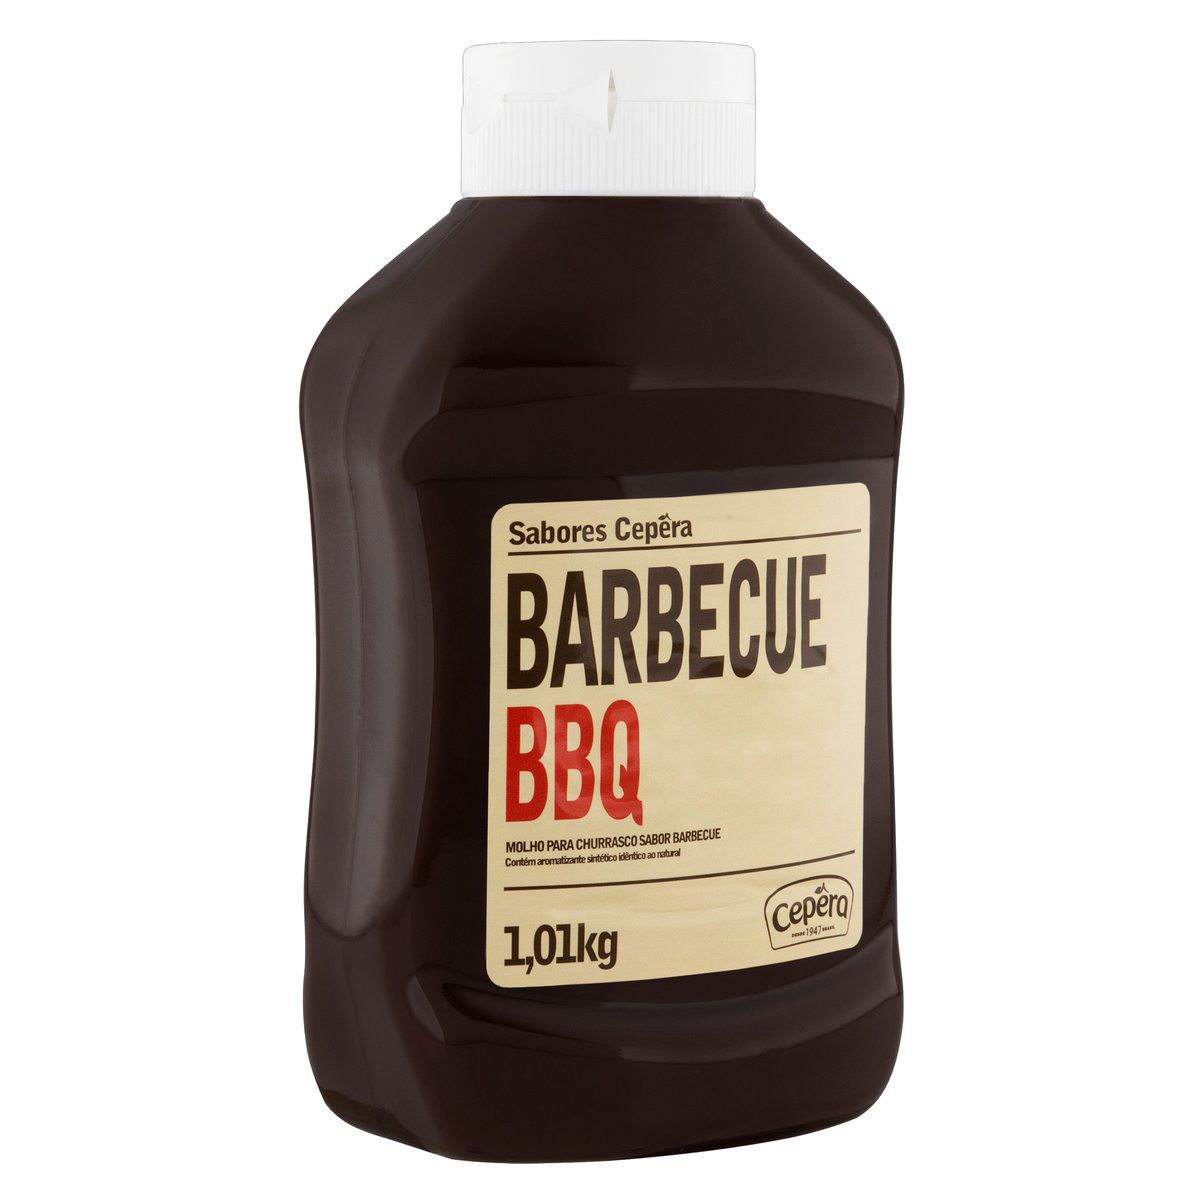 Barbecue BBQ 1,01kg